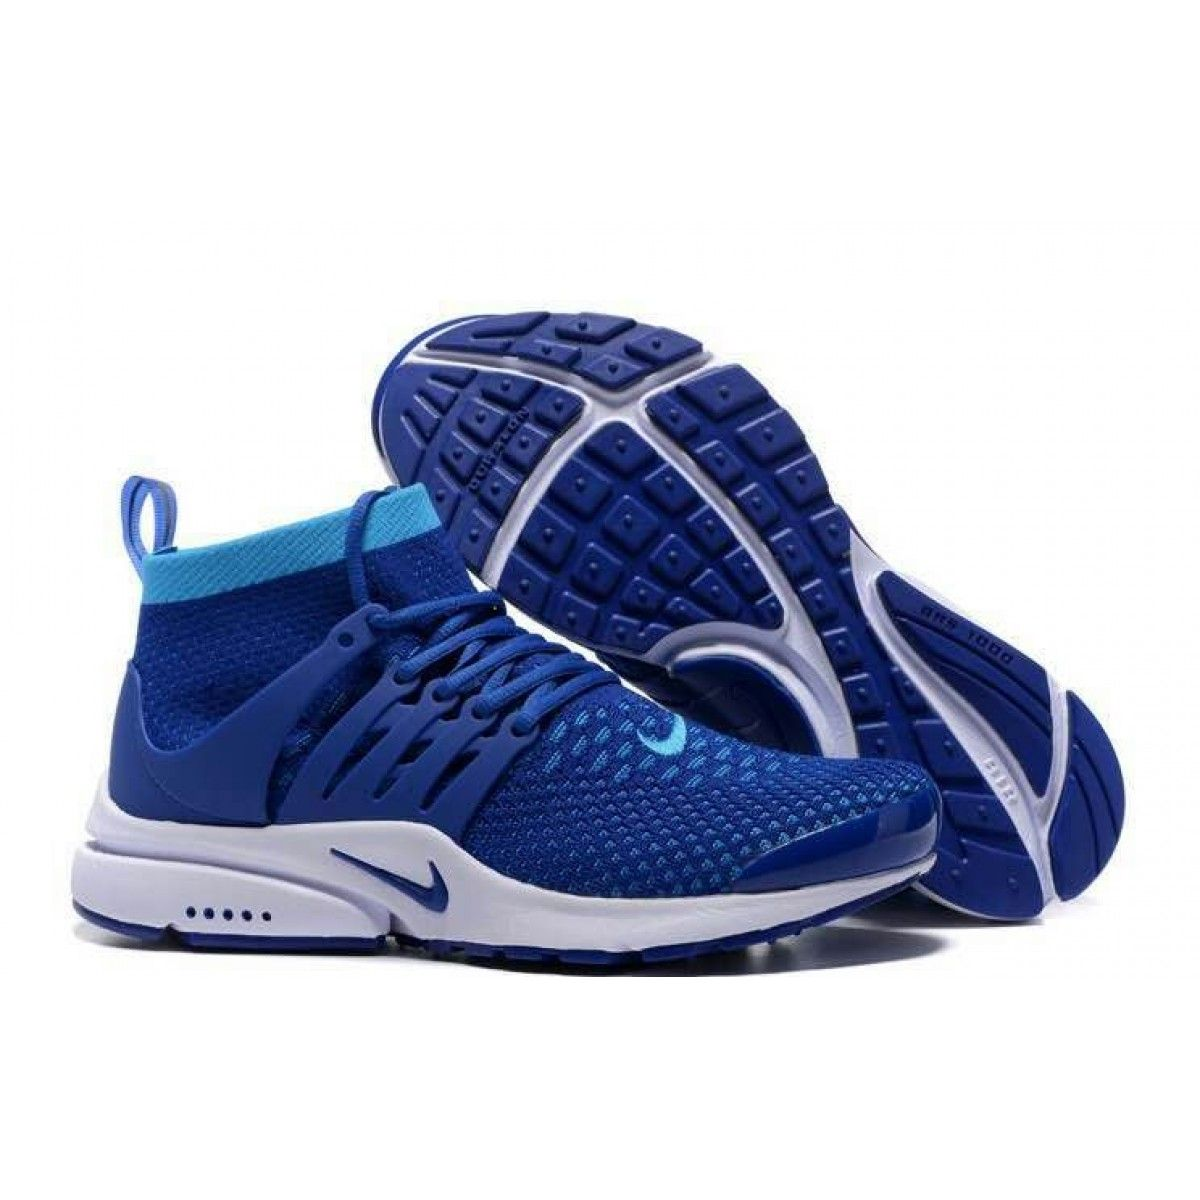 check out 0ae13 4477a Nike Air Presto Long Blue - Rs4,599